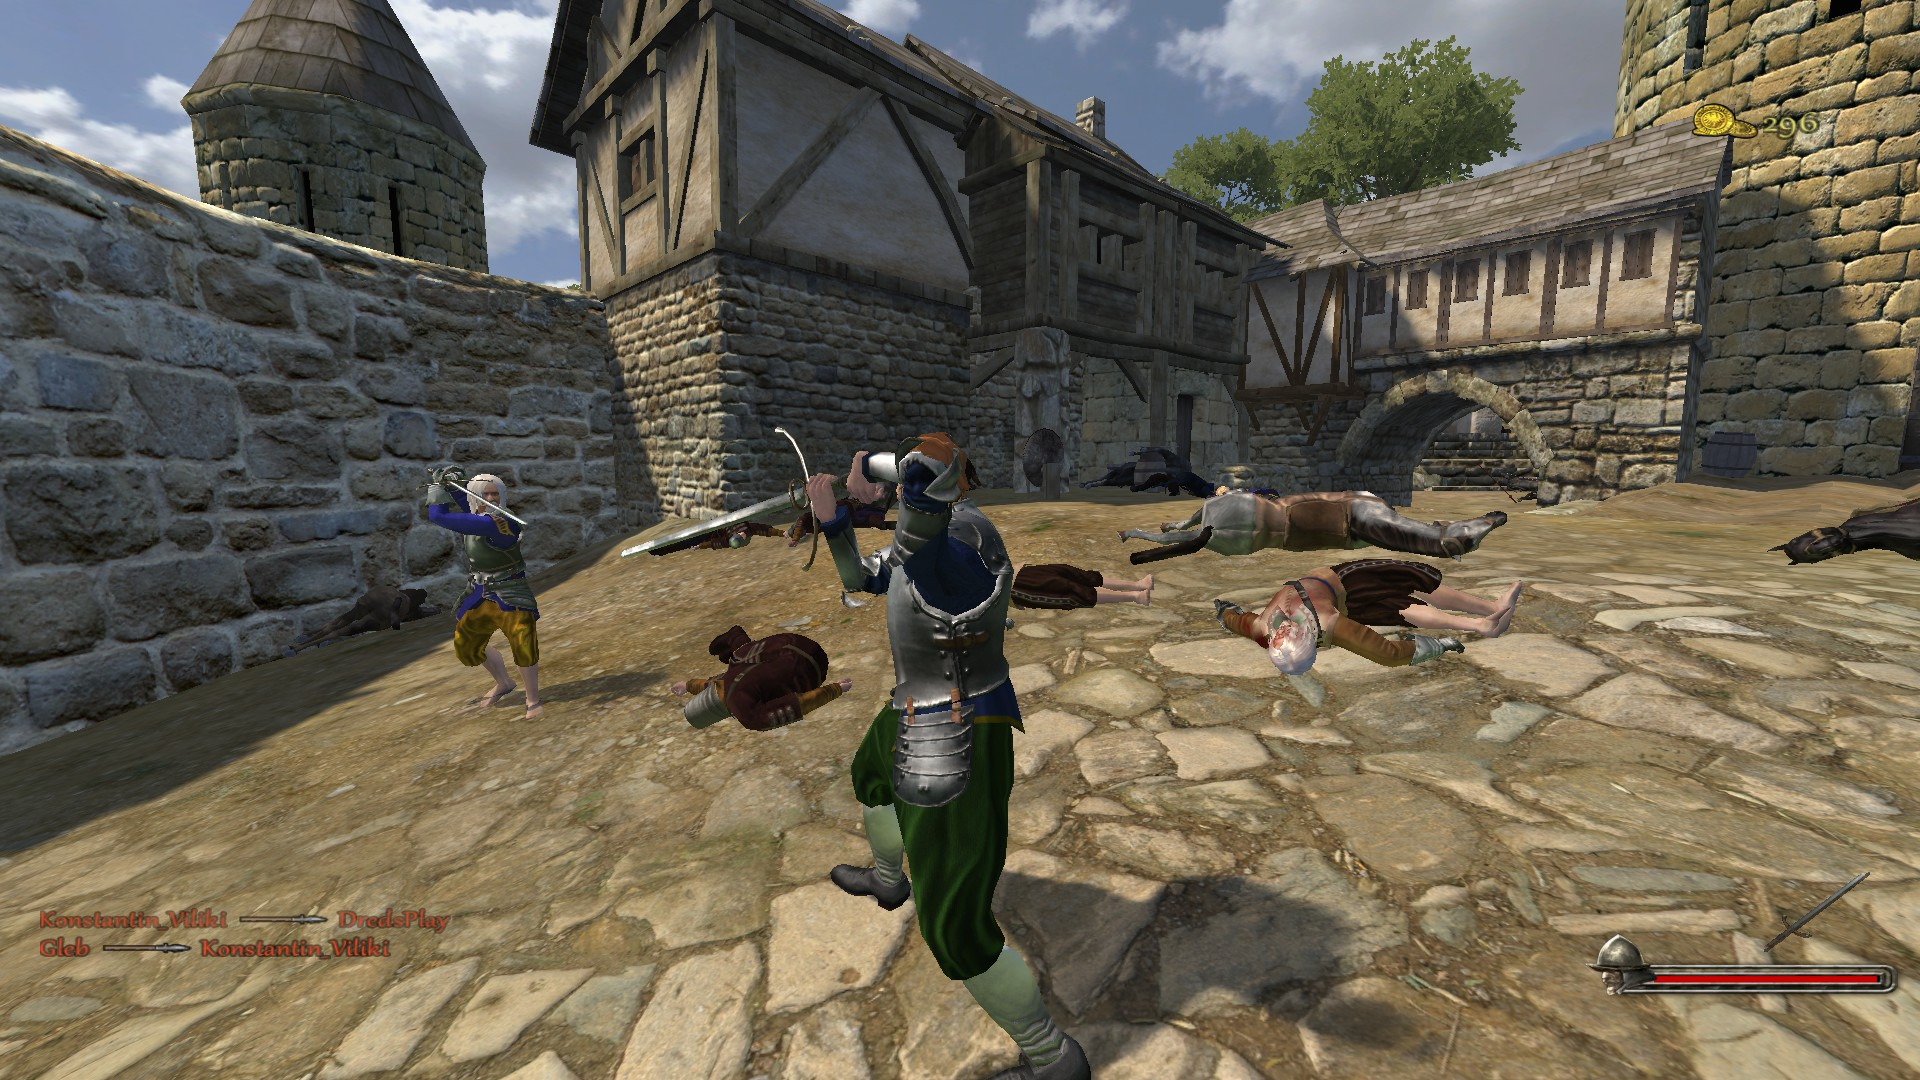 wfas animations mod for Mount & Blade: Warband